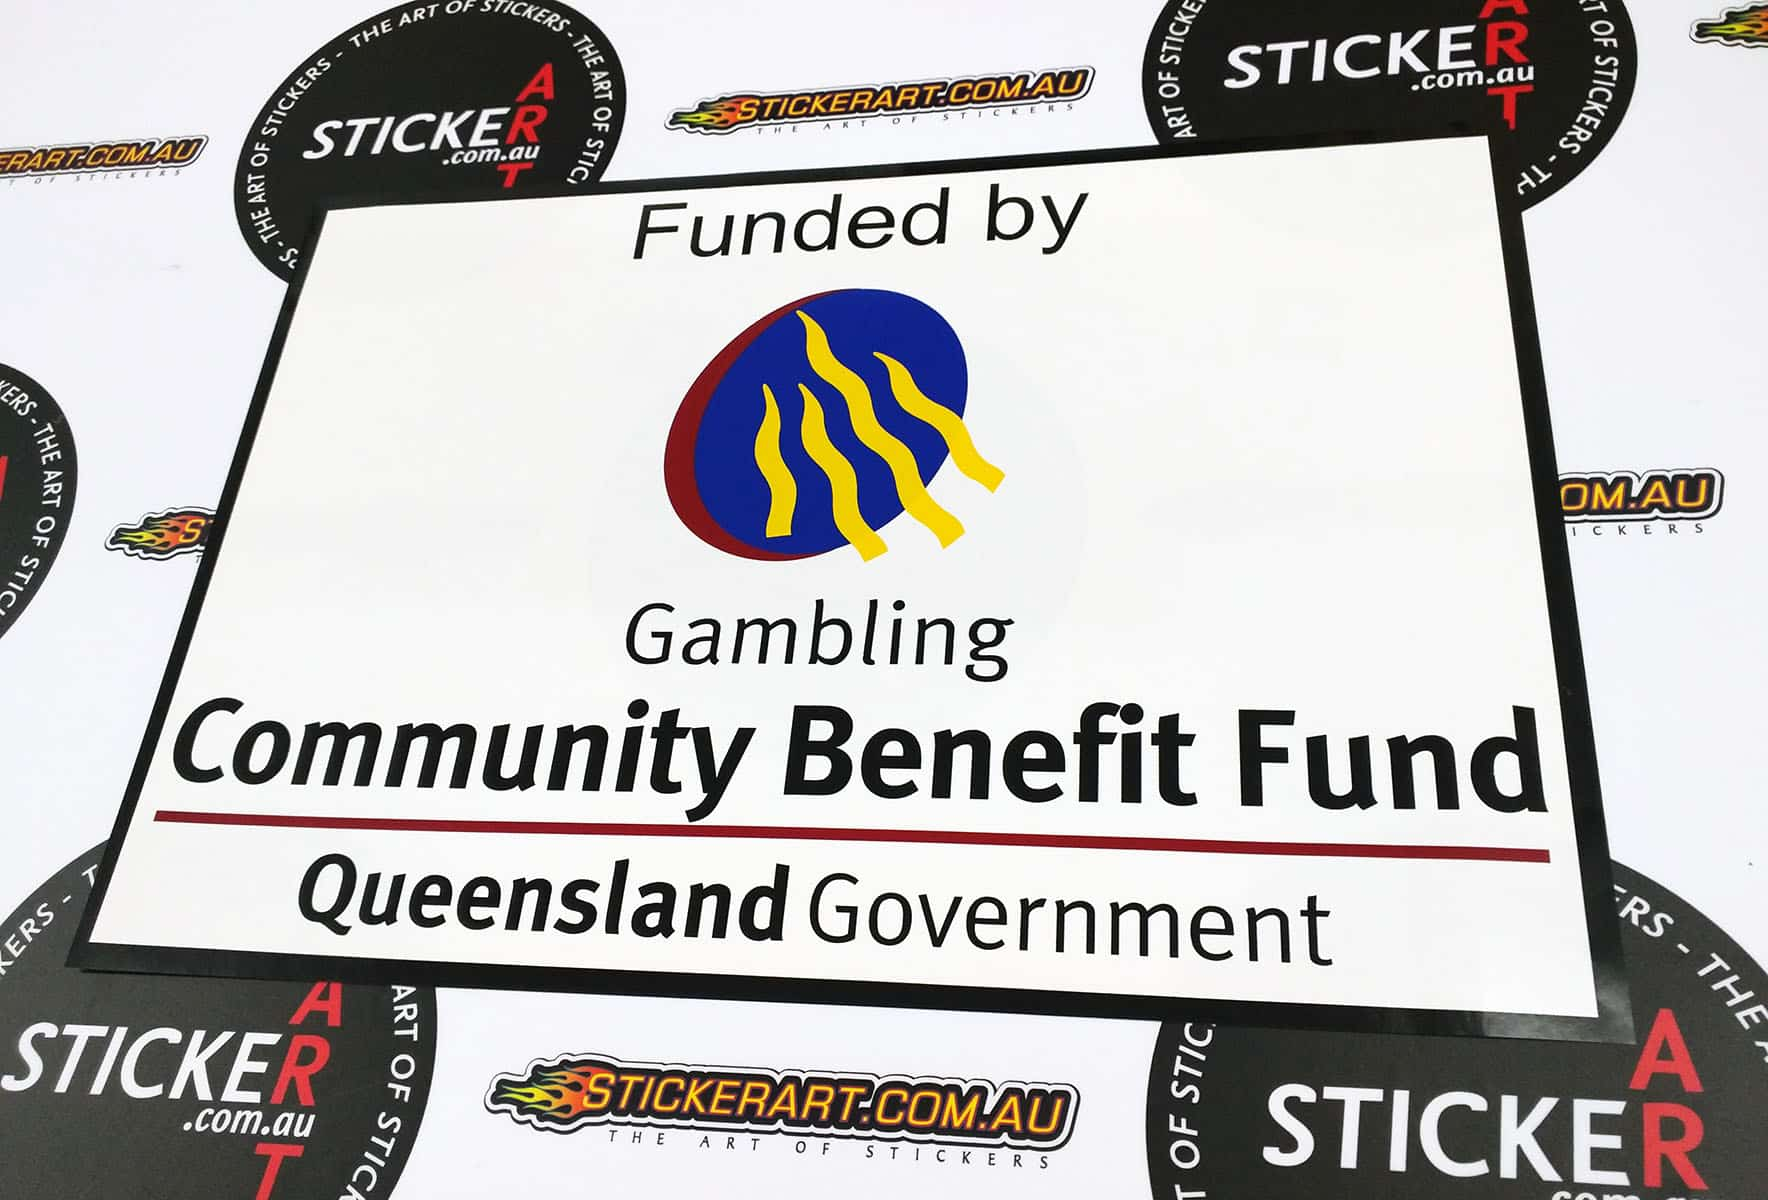 Qld gov gambling community benefit fund harrahs hotel and casino in laughlin